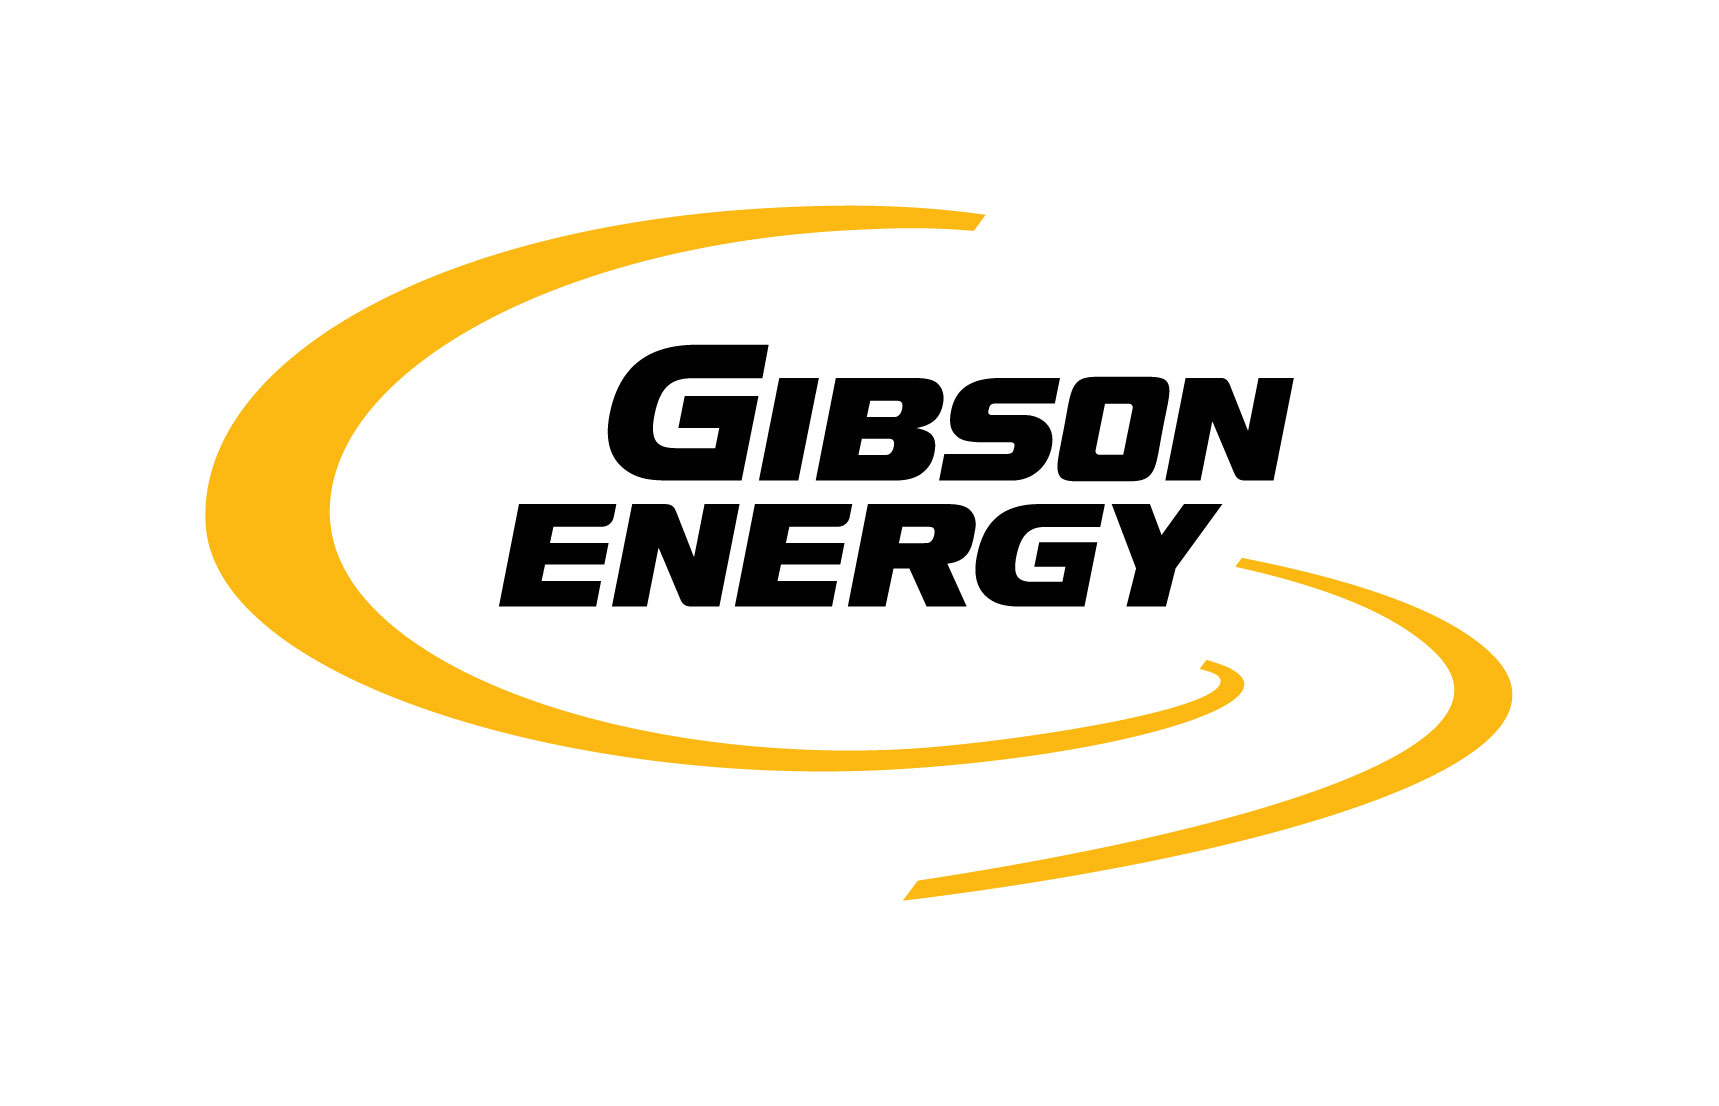 Gibson Energy Announces 2018 Fourth Quarter and Year-End Results and Provides Investor Day Webcast Details